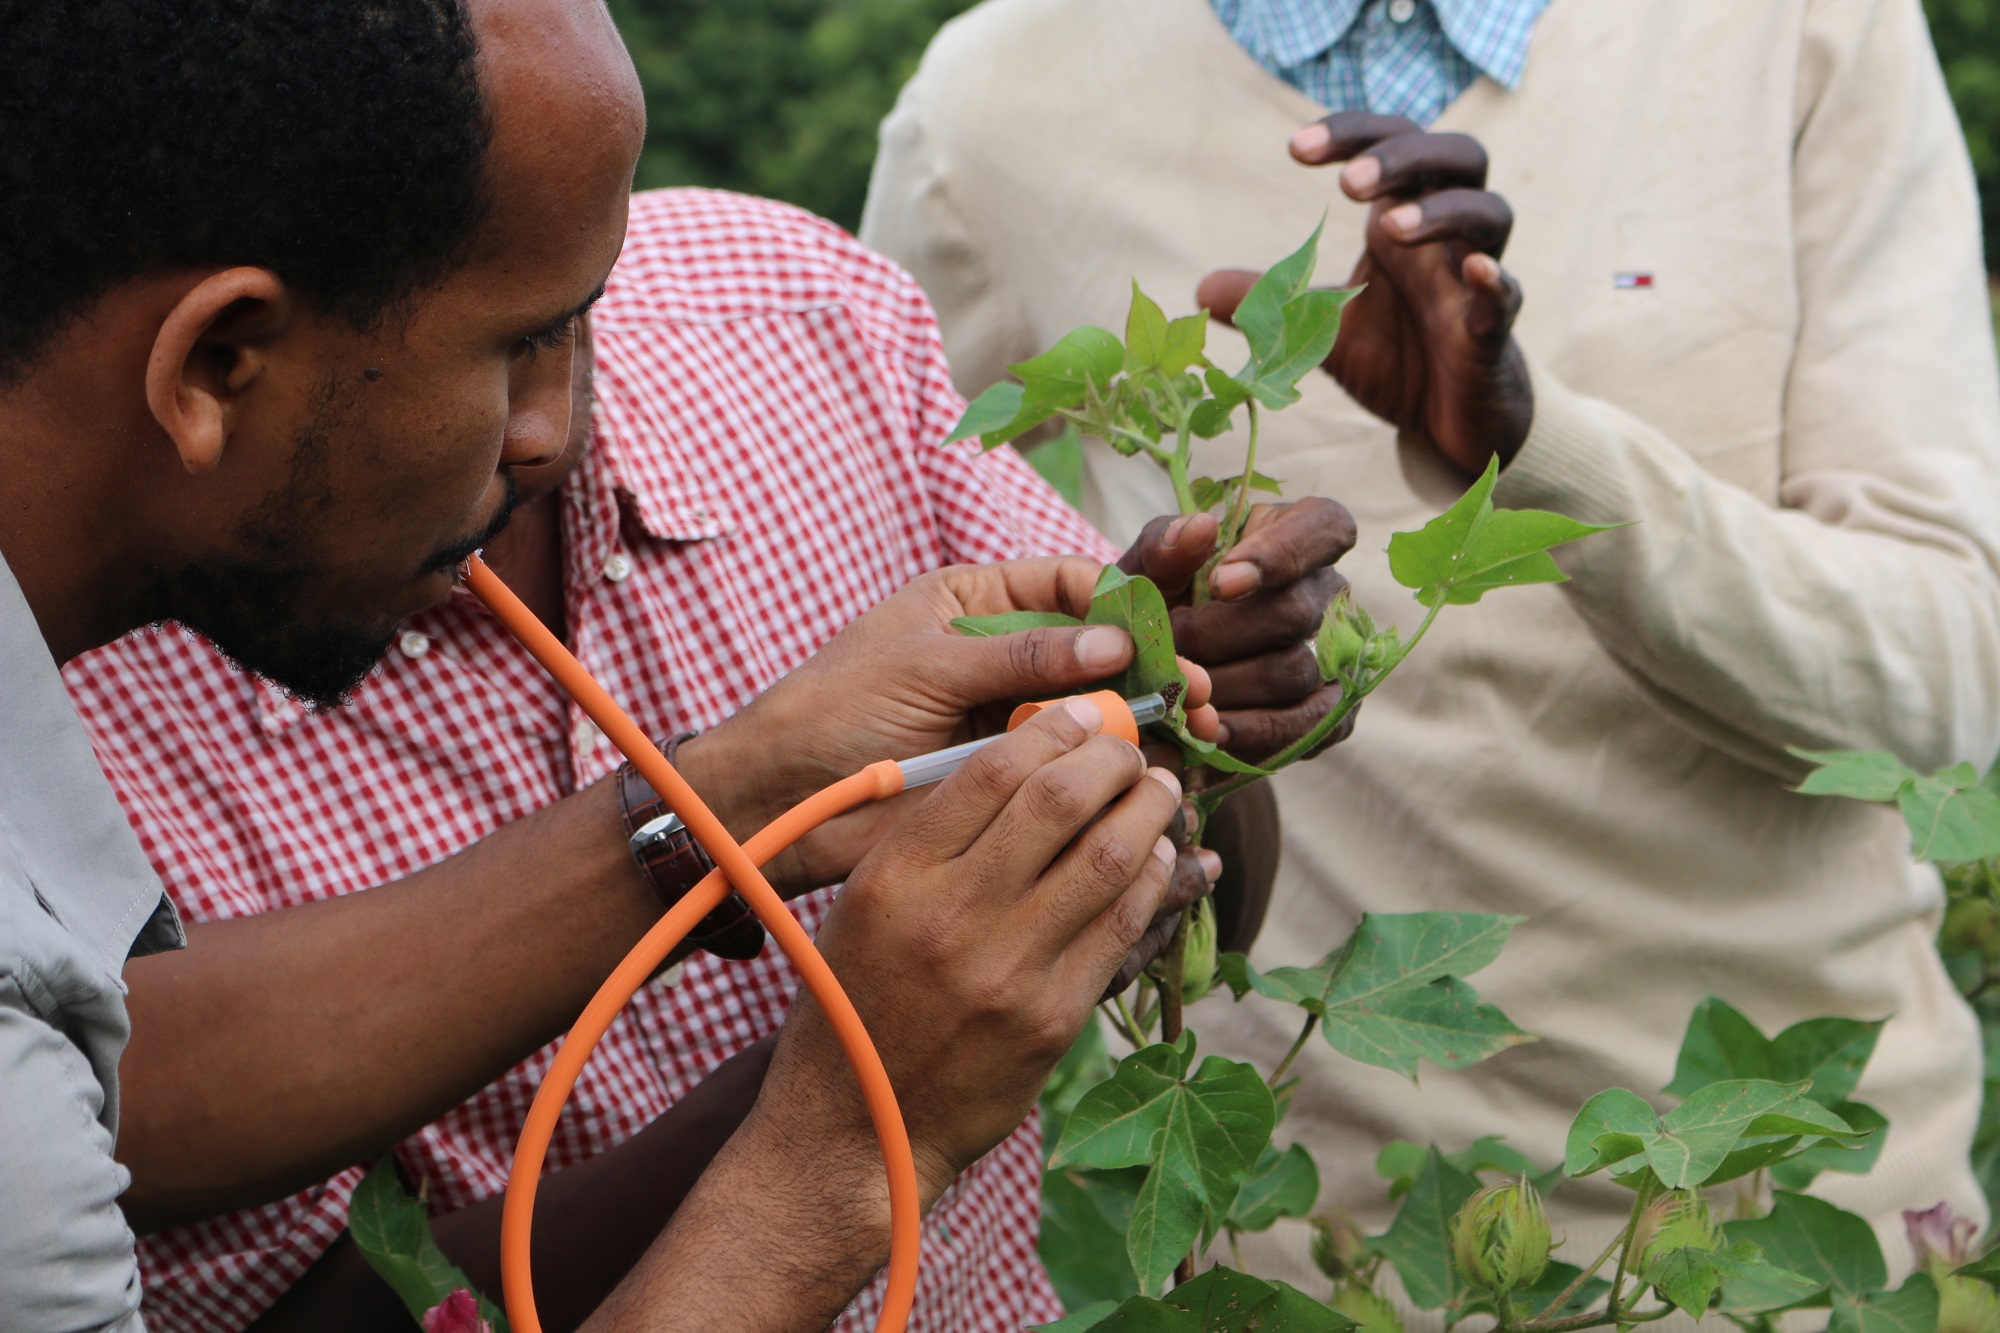 Cotton farmers in Ethiopia using Integrated Pest Management methods